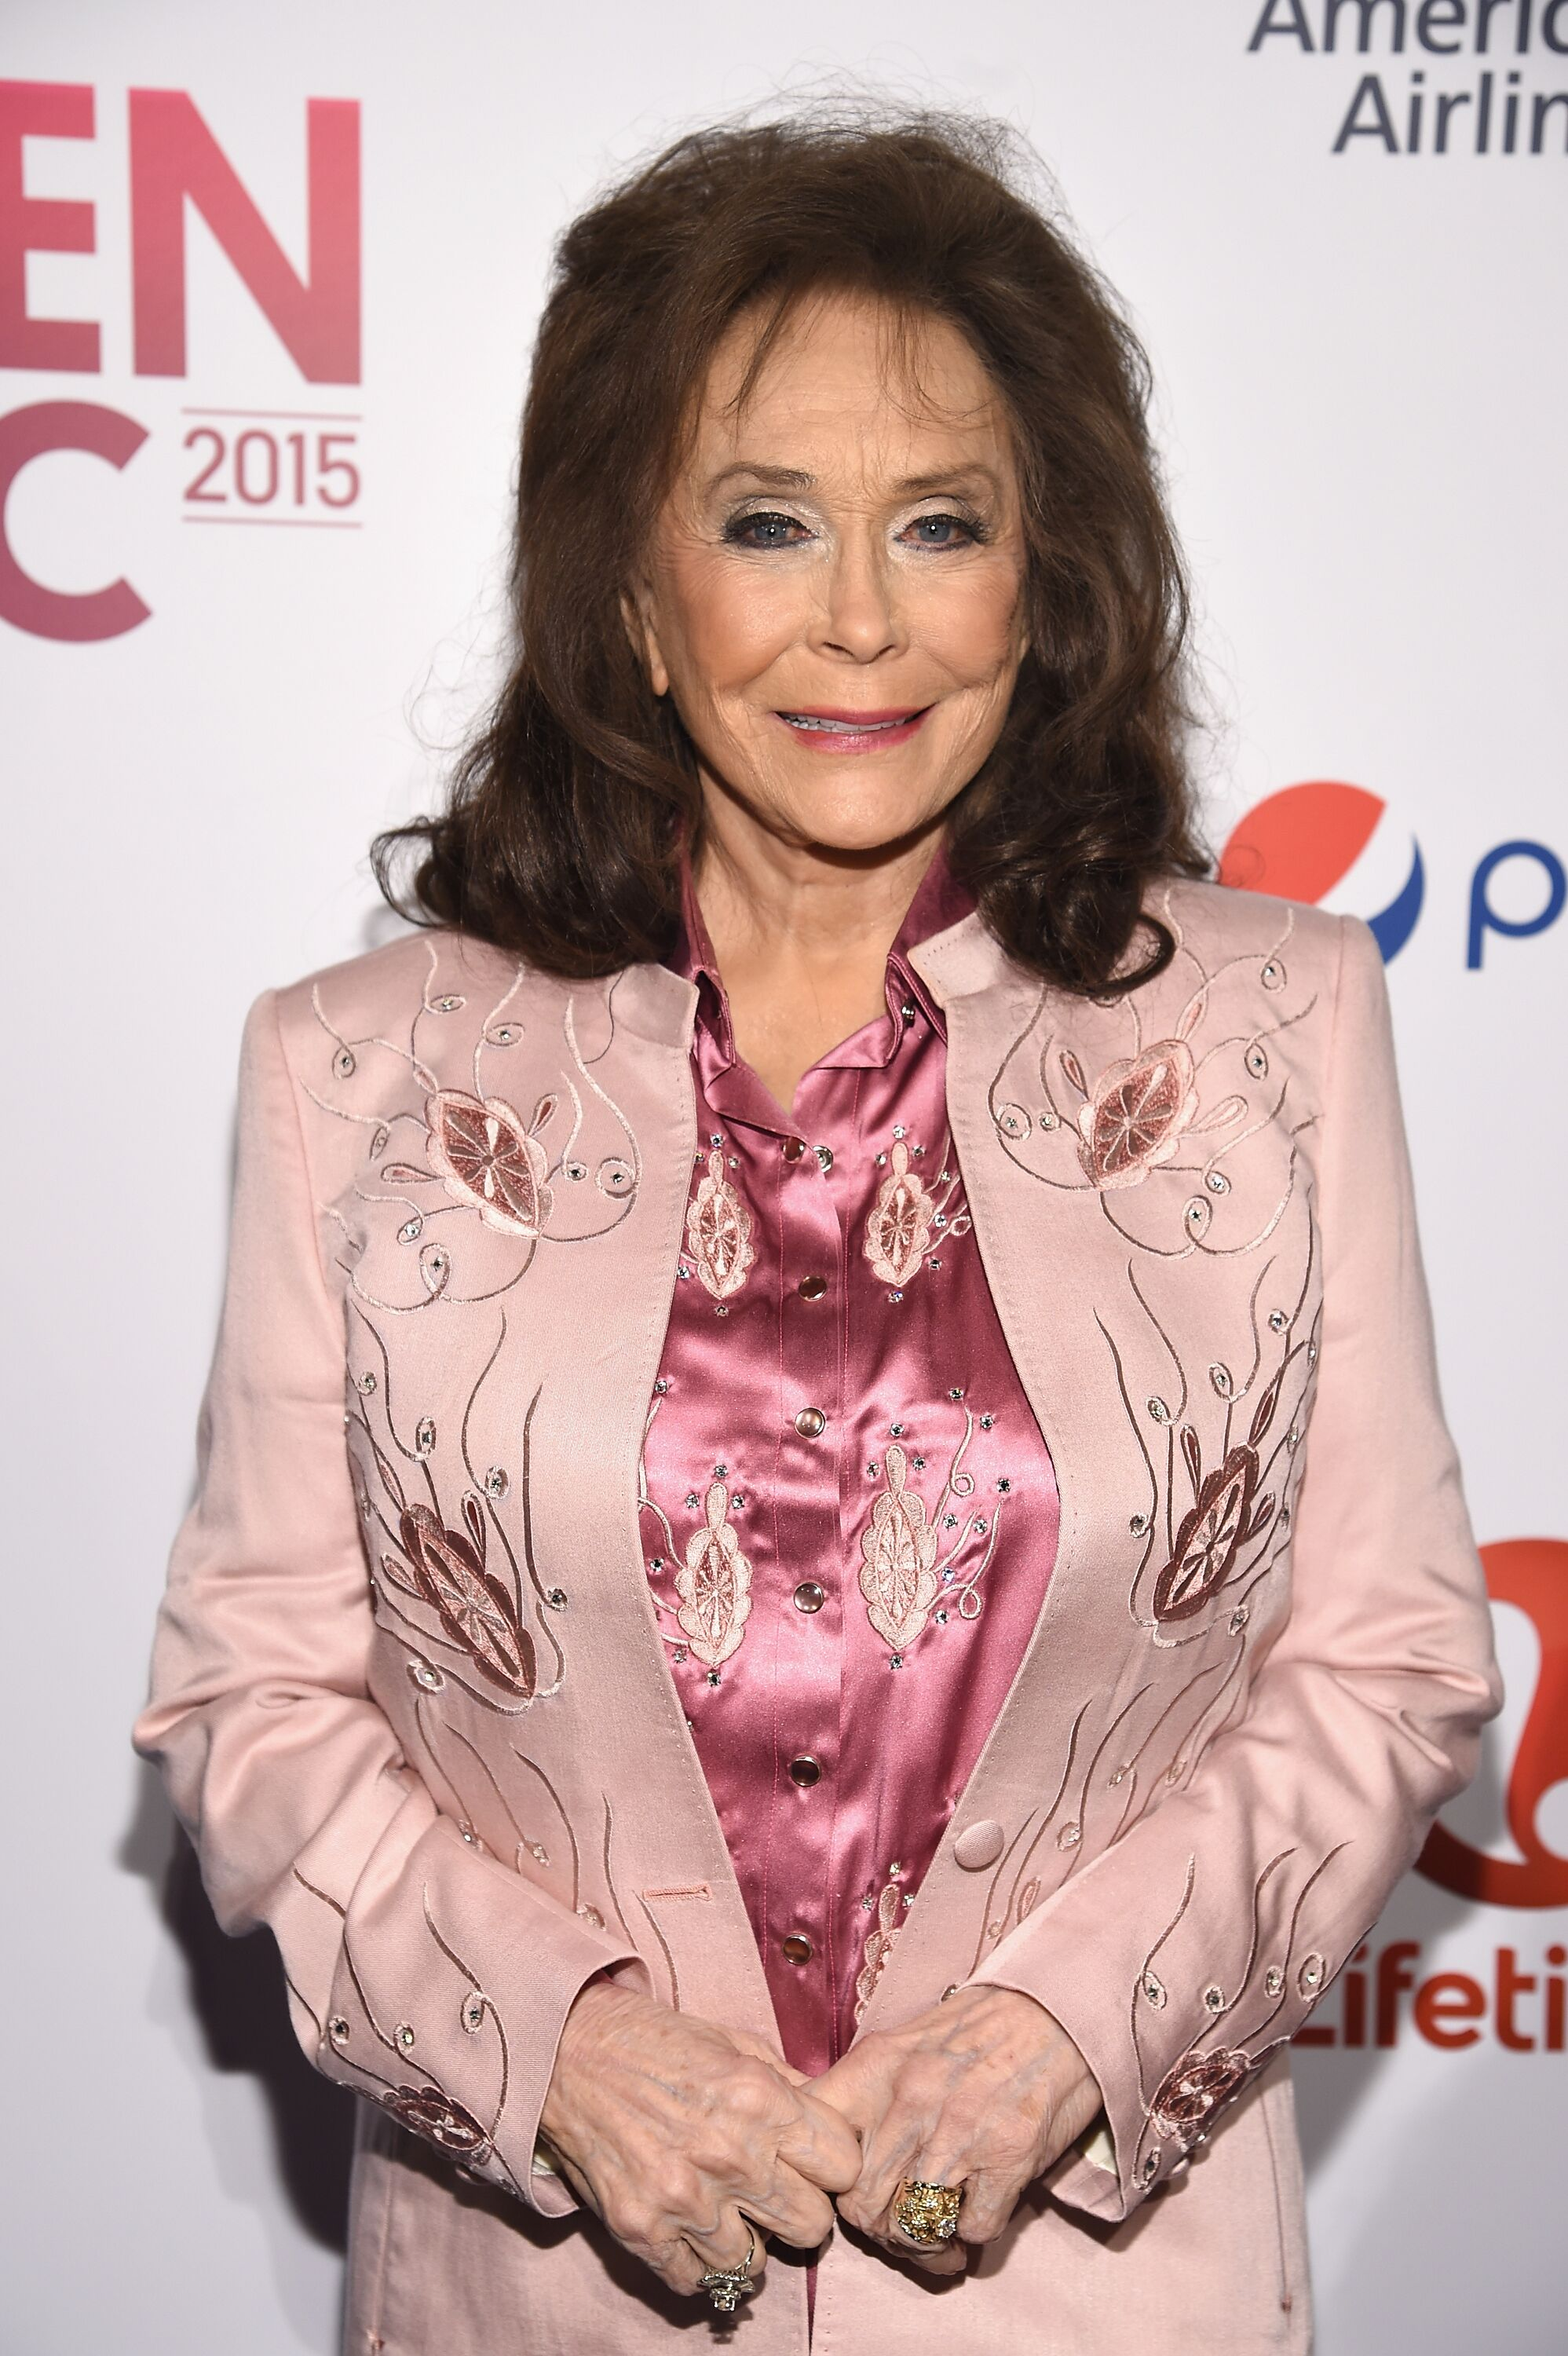 Loretta Lynn à la 42e rue Cipriani le 11 décembre 2015 à New York | Photo: Getty Images